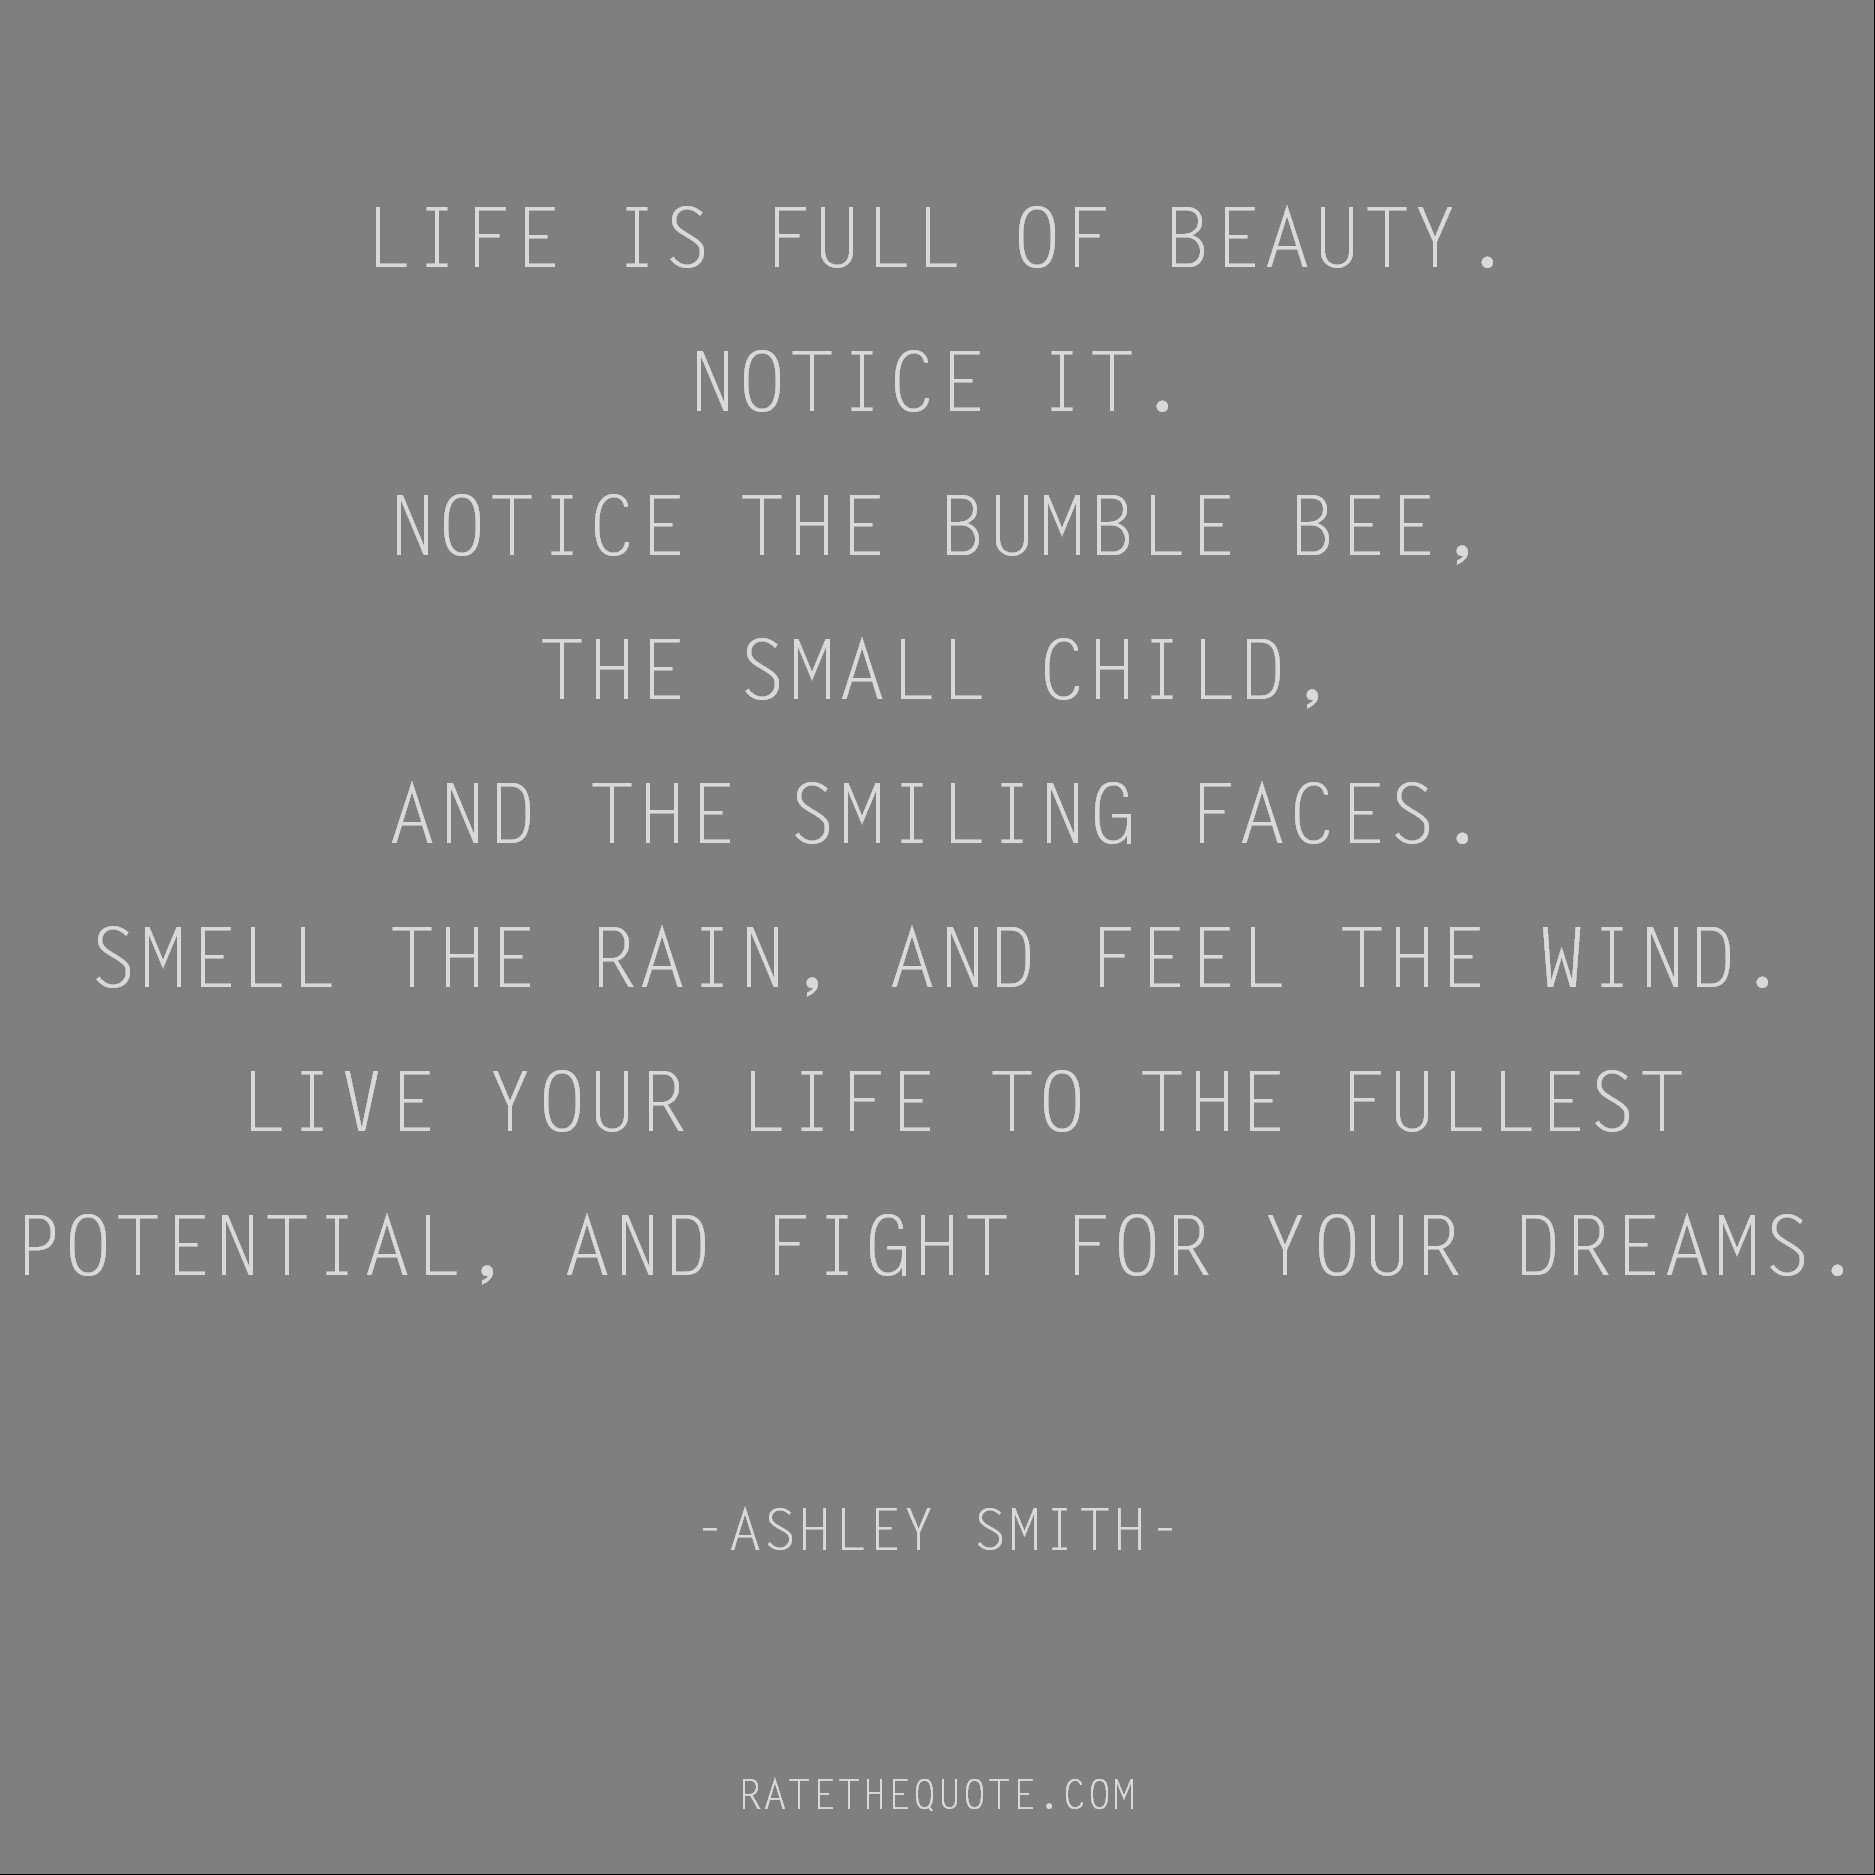 Quotes About Beauty Ratethequote